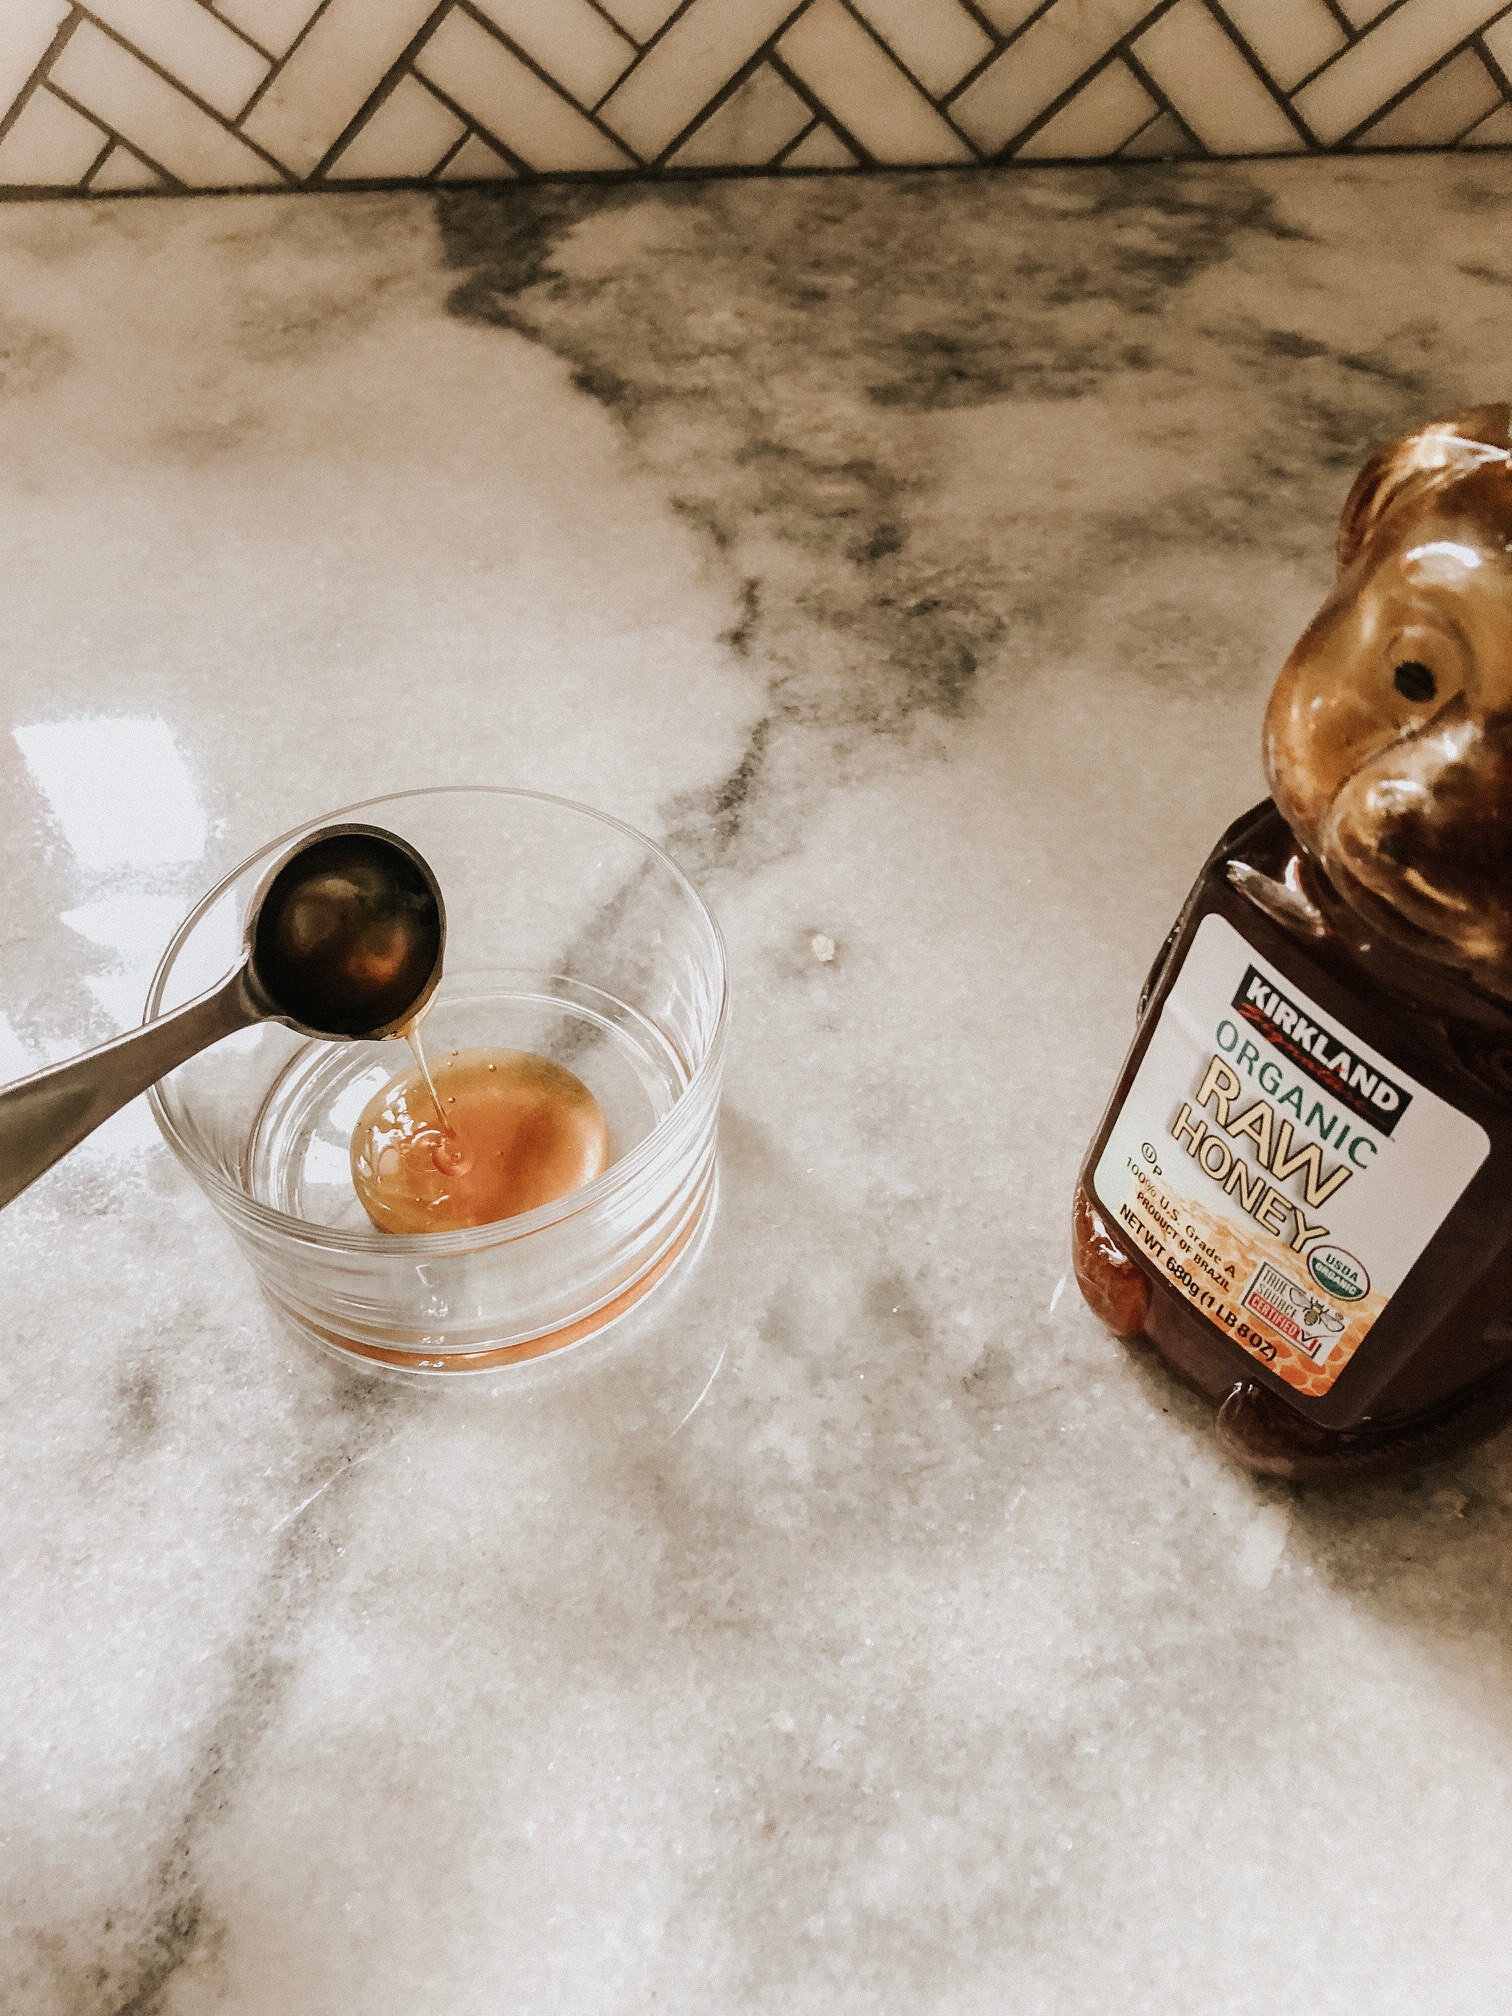 Making DIY Coffee Lip Scrub | Daily Splendor #DIY #lipscrub #beautycare #DIYbeauty #DIYscrub